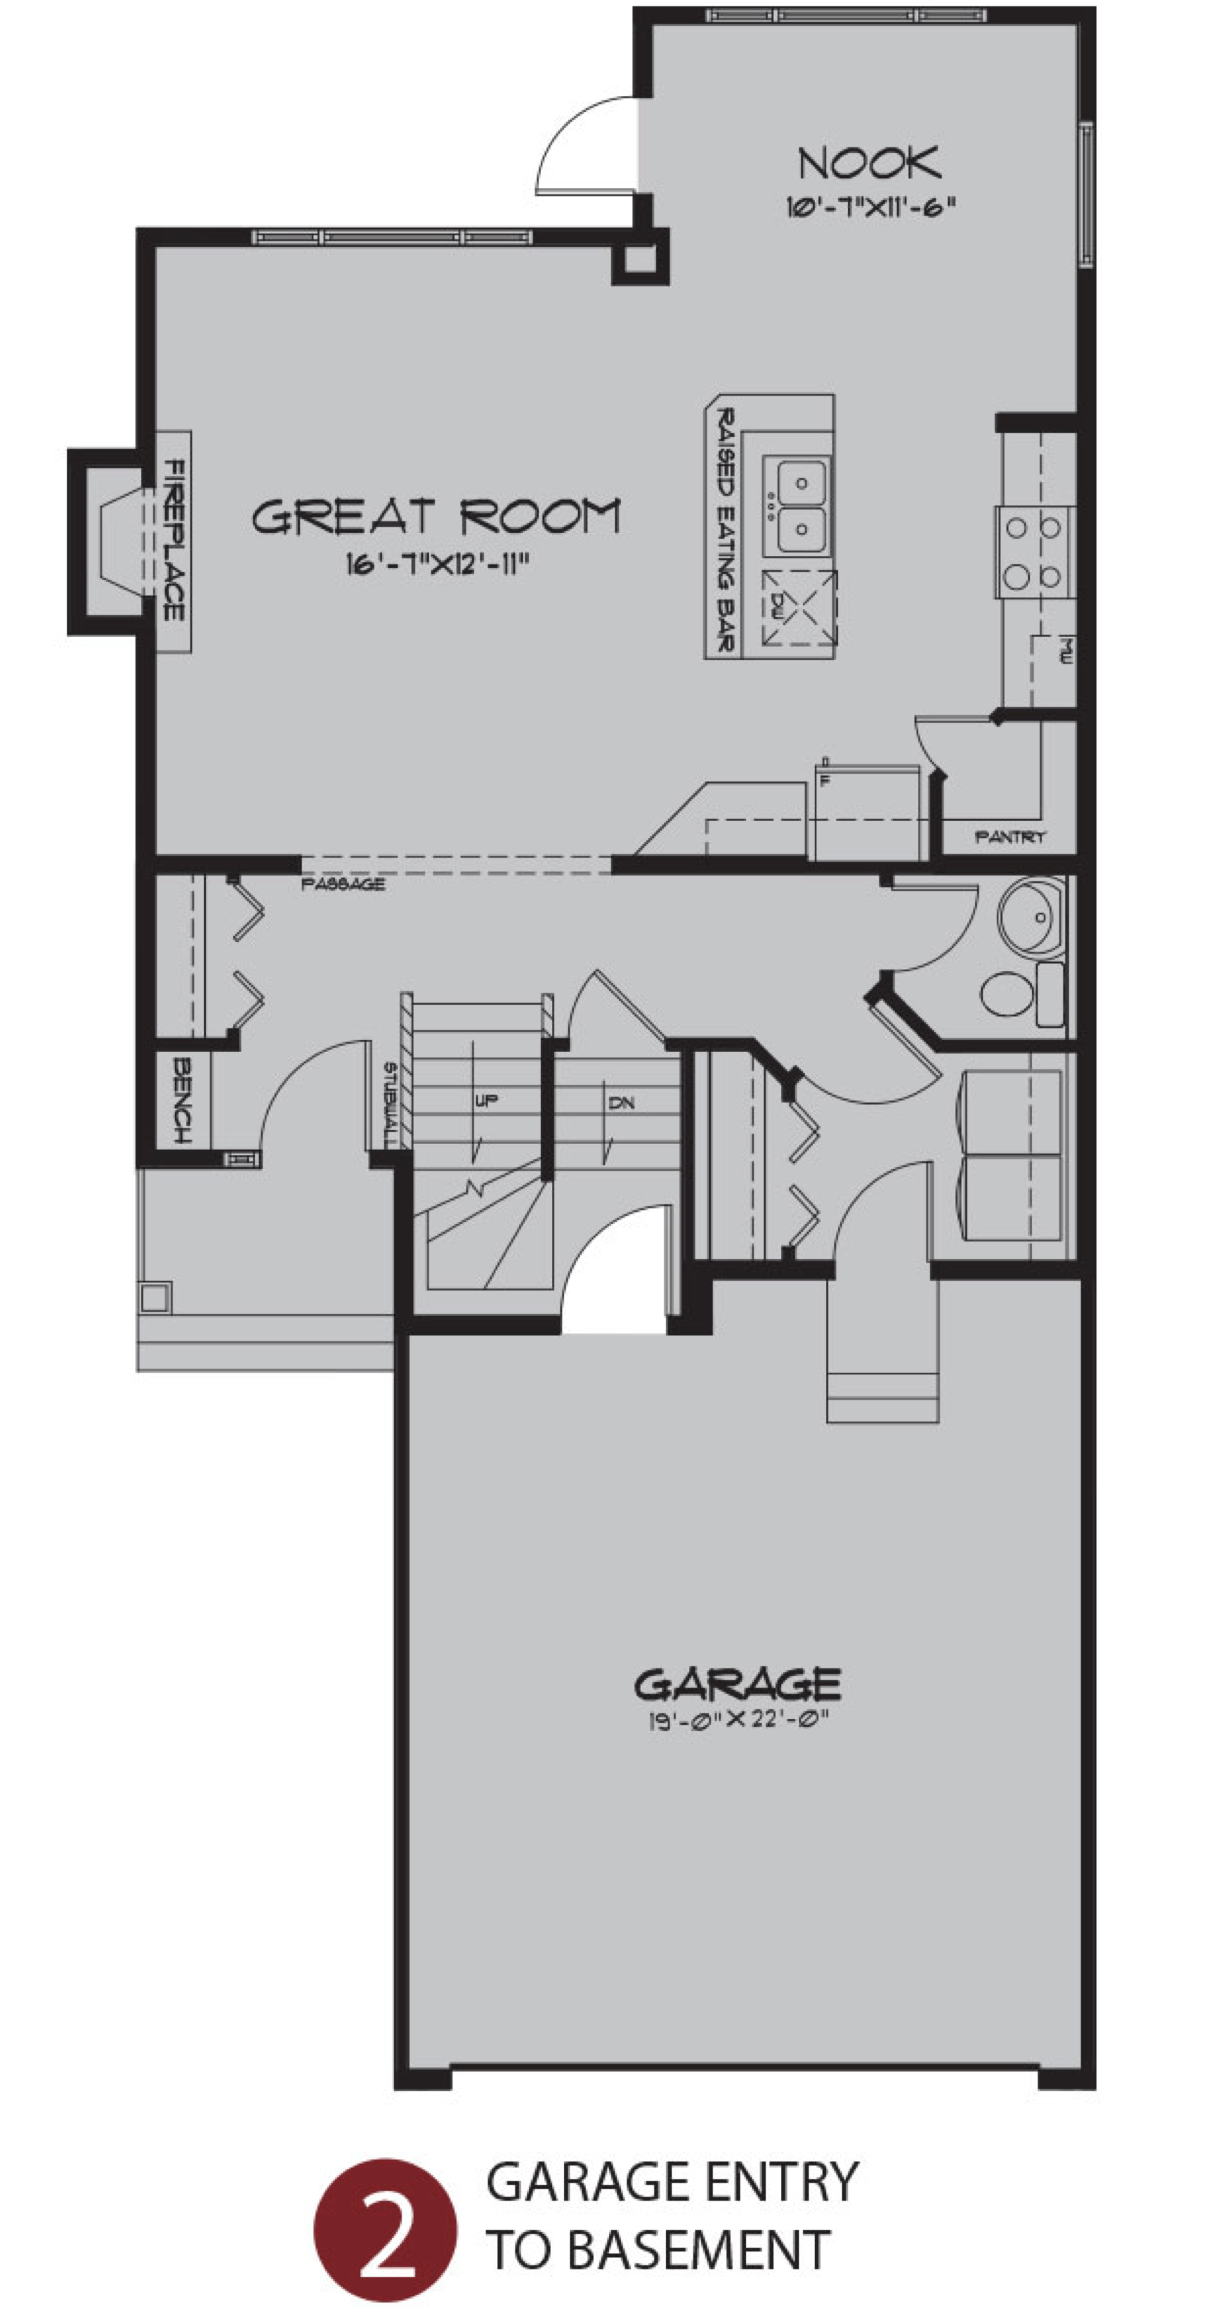 Ideal Home Models for Multi-Generational Families Garage Image